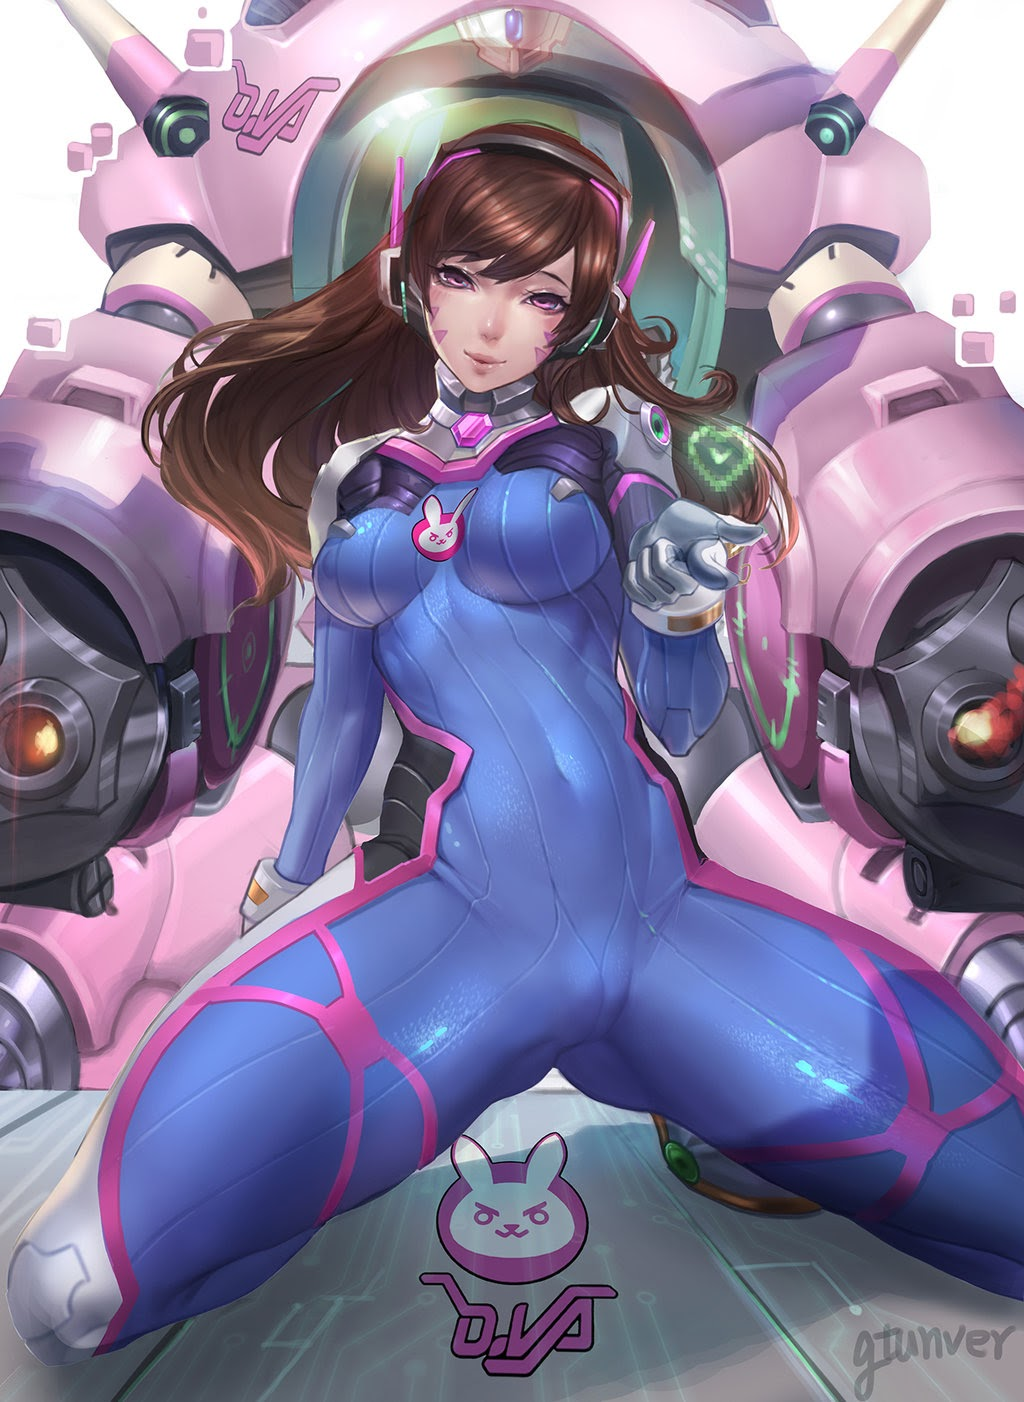 hot d.va images